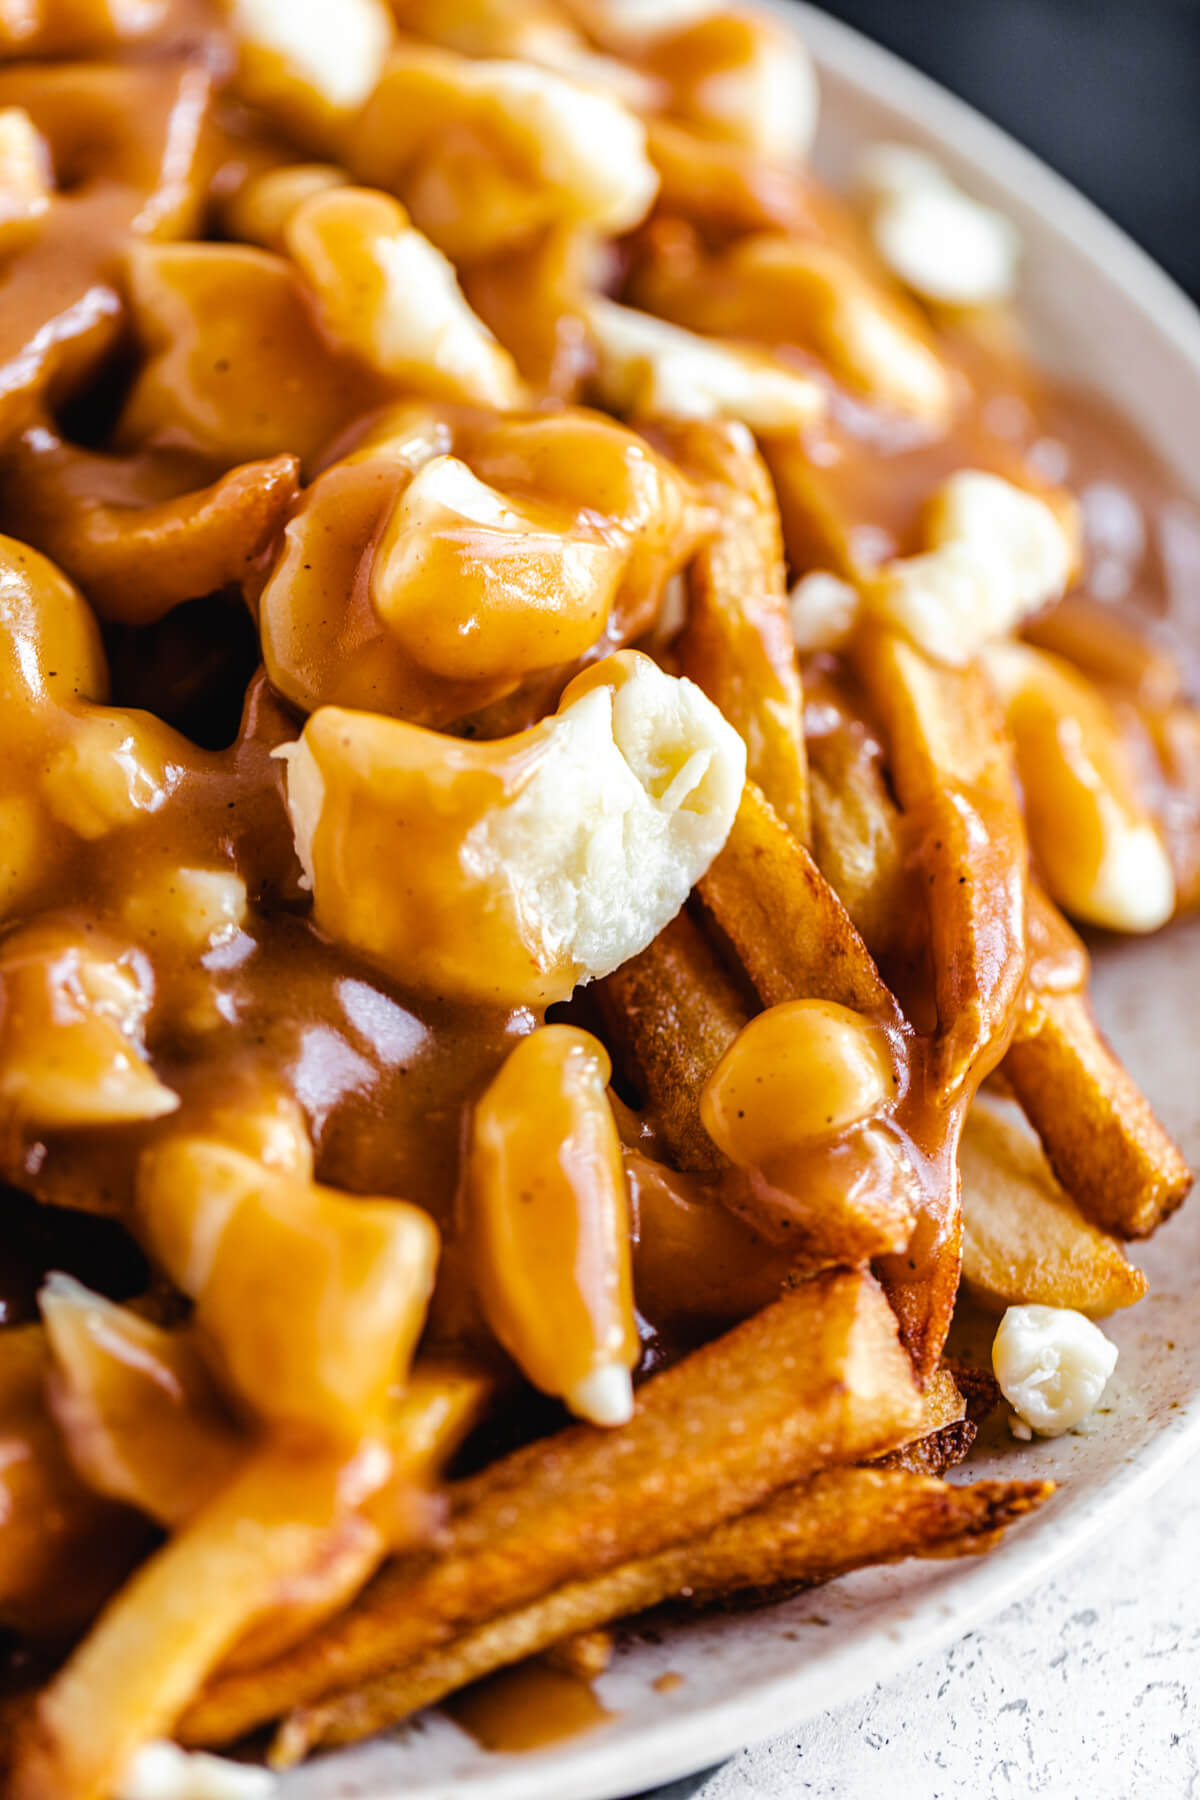 close up of fries and cheese curds covered in gravy